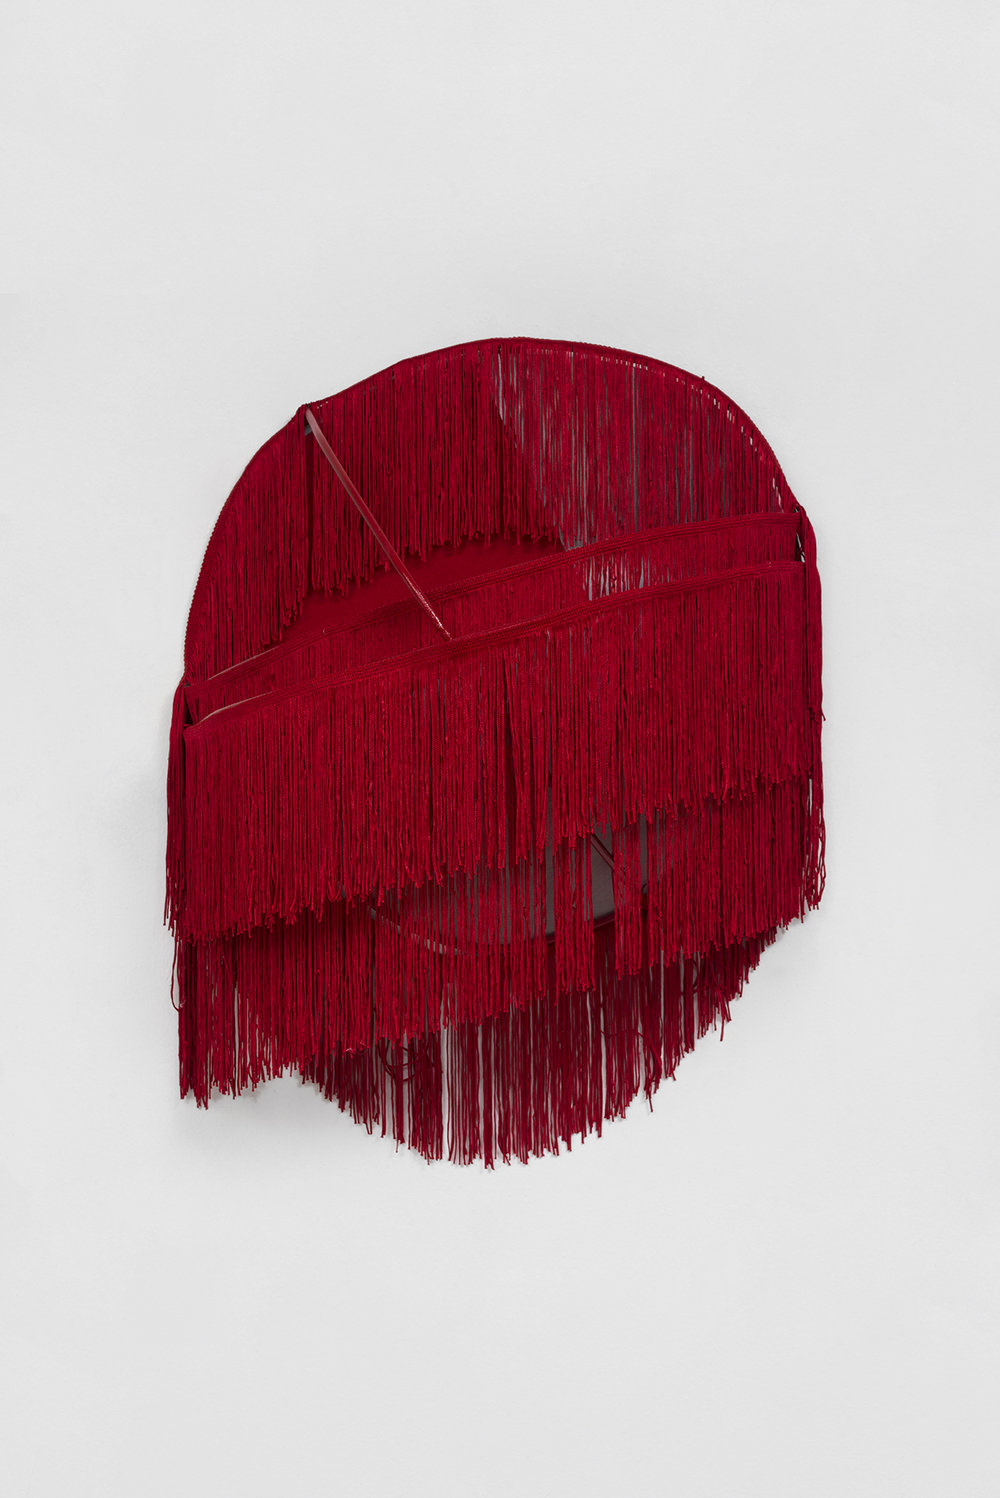 And She was She (Red), 2016  Welded stainless steel, acrylic paint, aluminum, felt, and fringe  28 x 19 x 8 inches